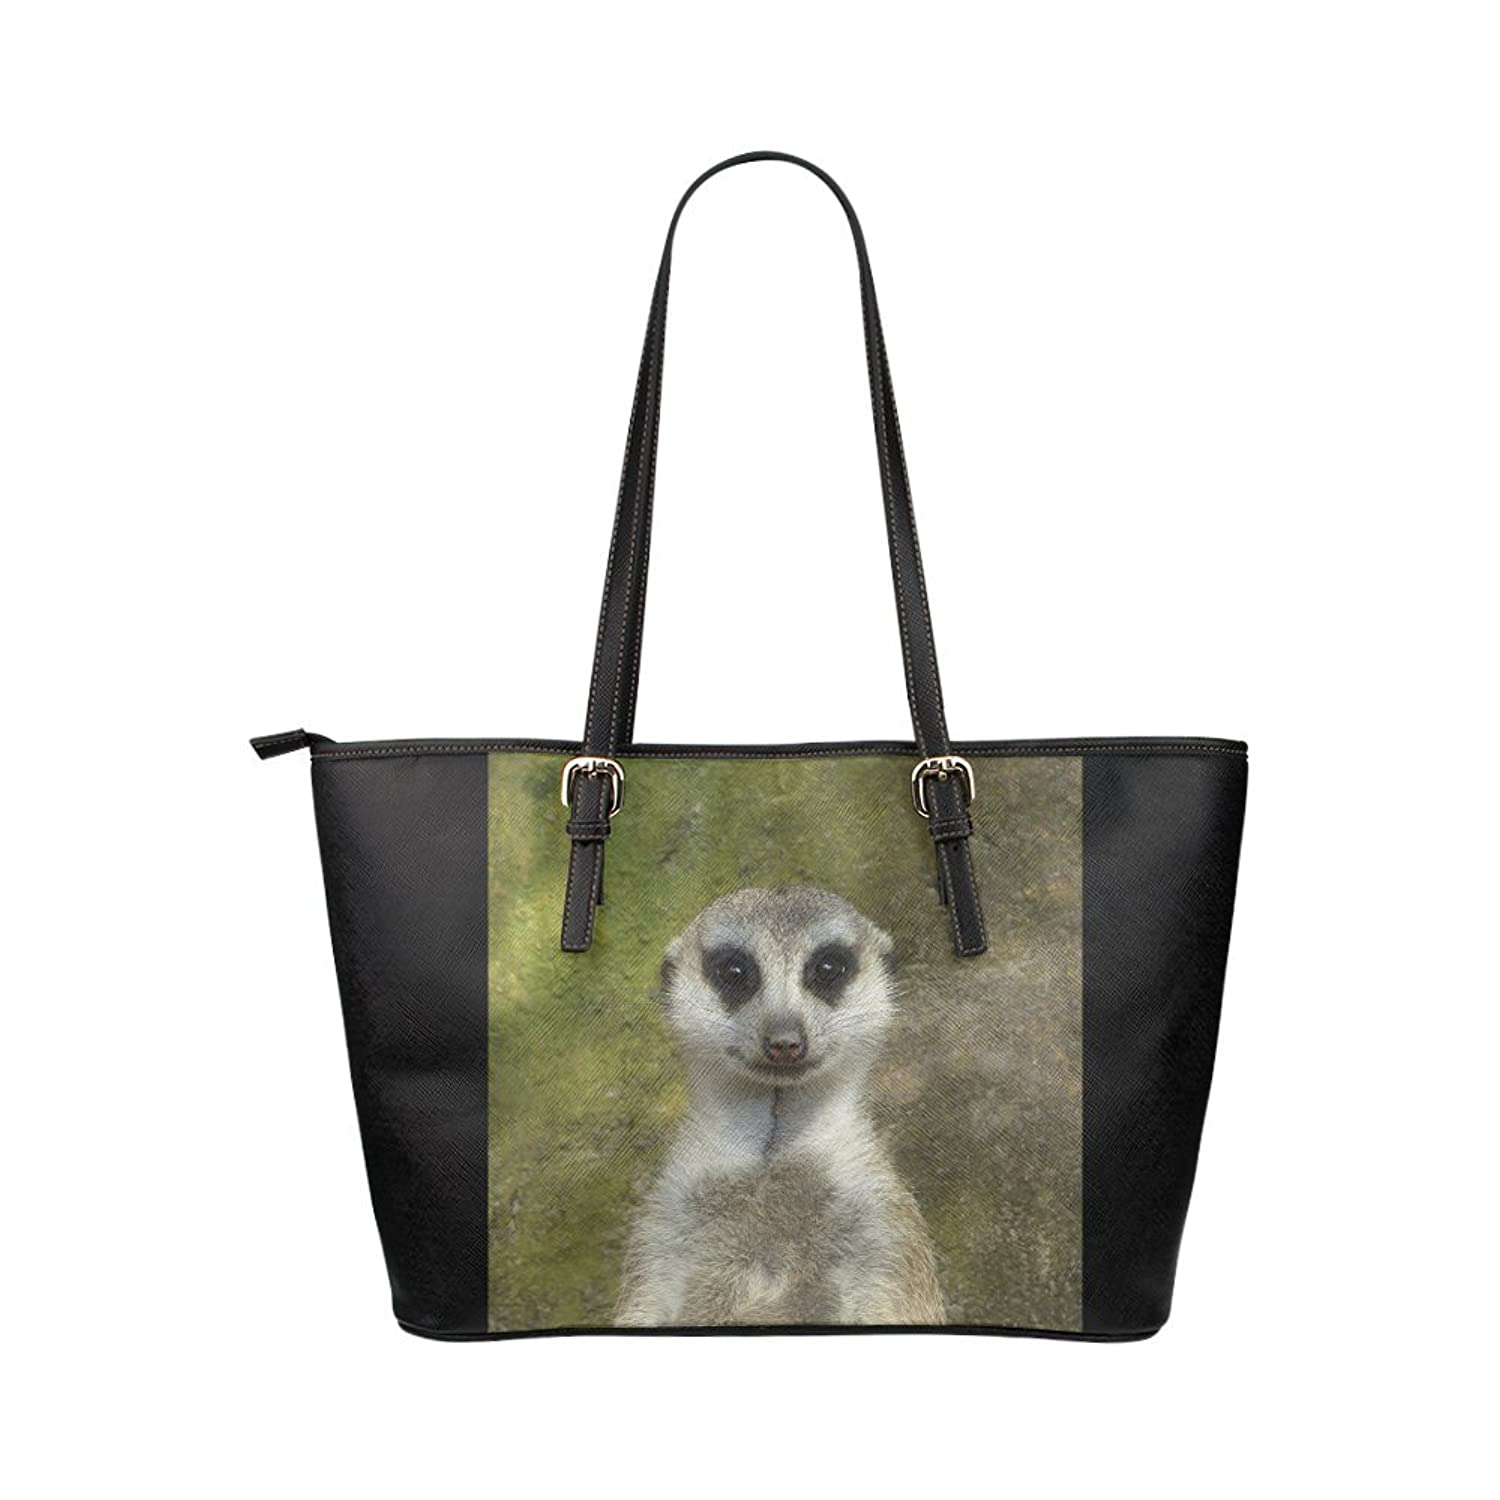 Nicedesigned Tote Bag Funny Meerkat Leather Tote Shoulder Bag Handbag for Women Girls